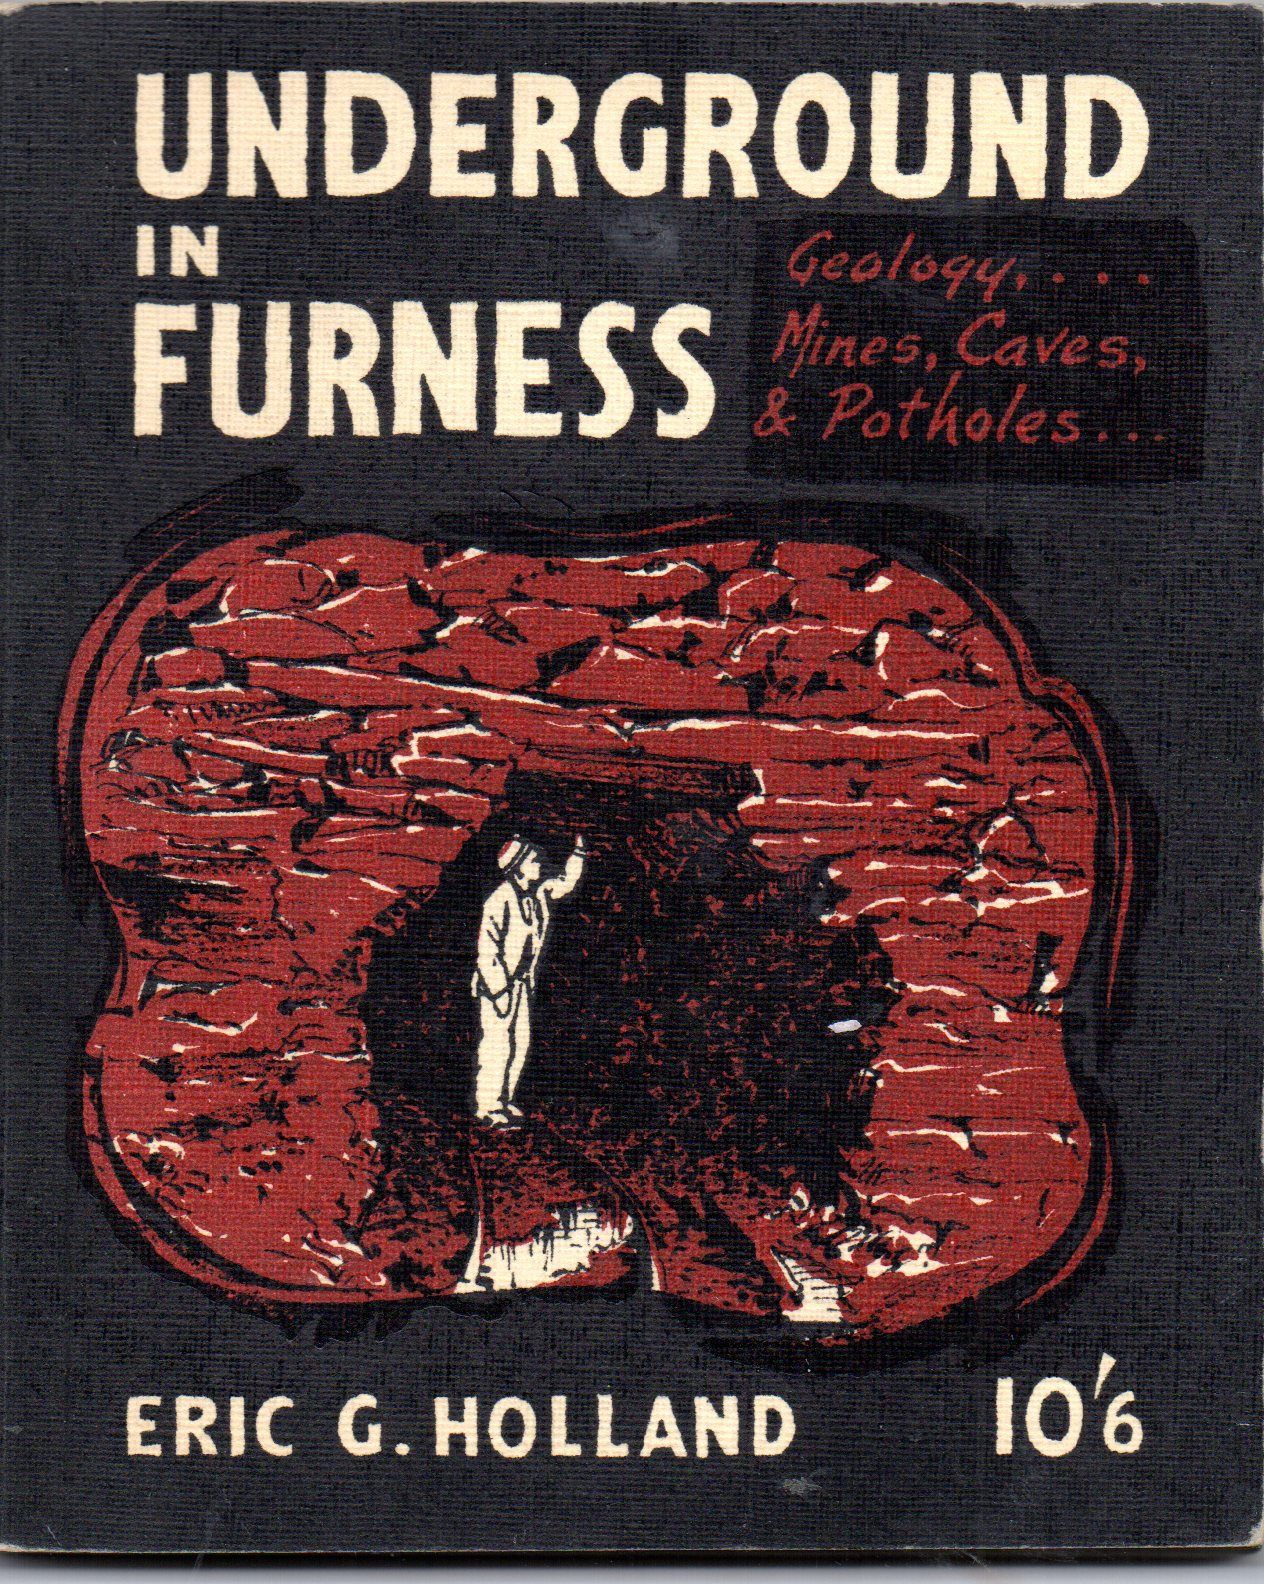 [USED] Underground in Furness - Guide to the Geology, Mines, Caves and Potholes of South Westmorland and North Lancashire